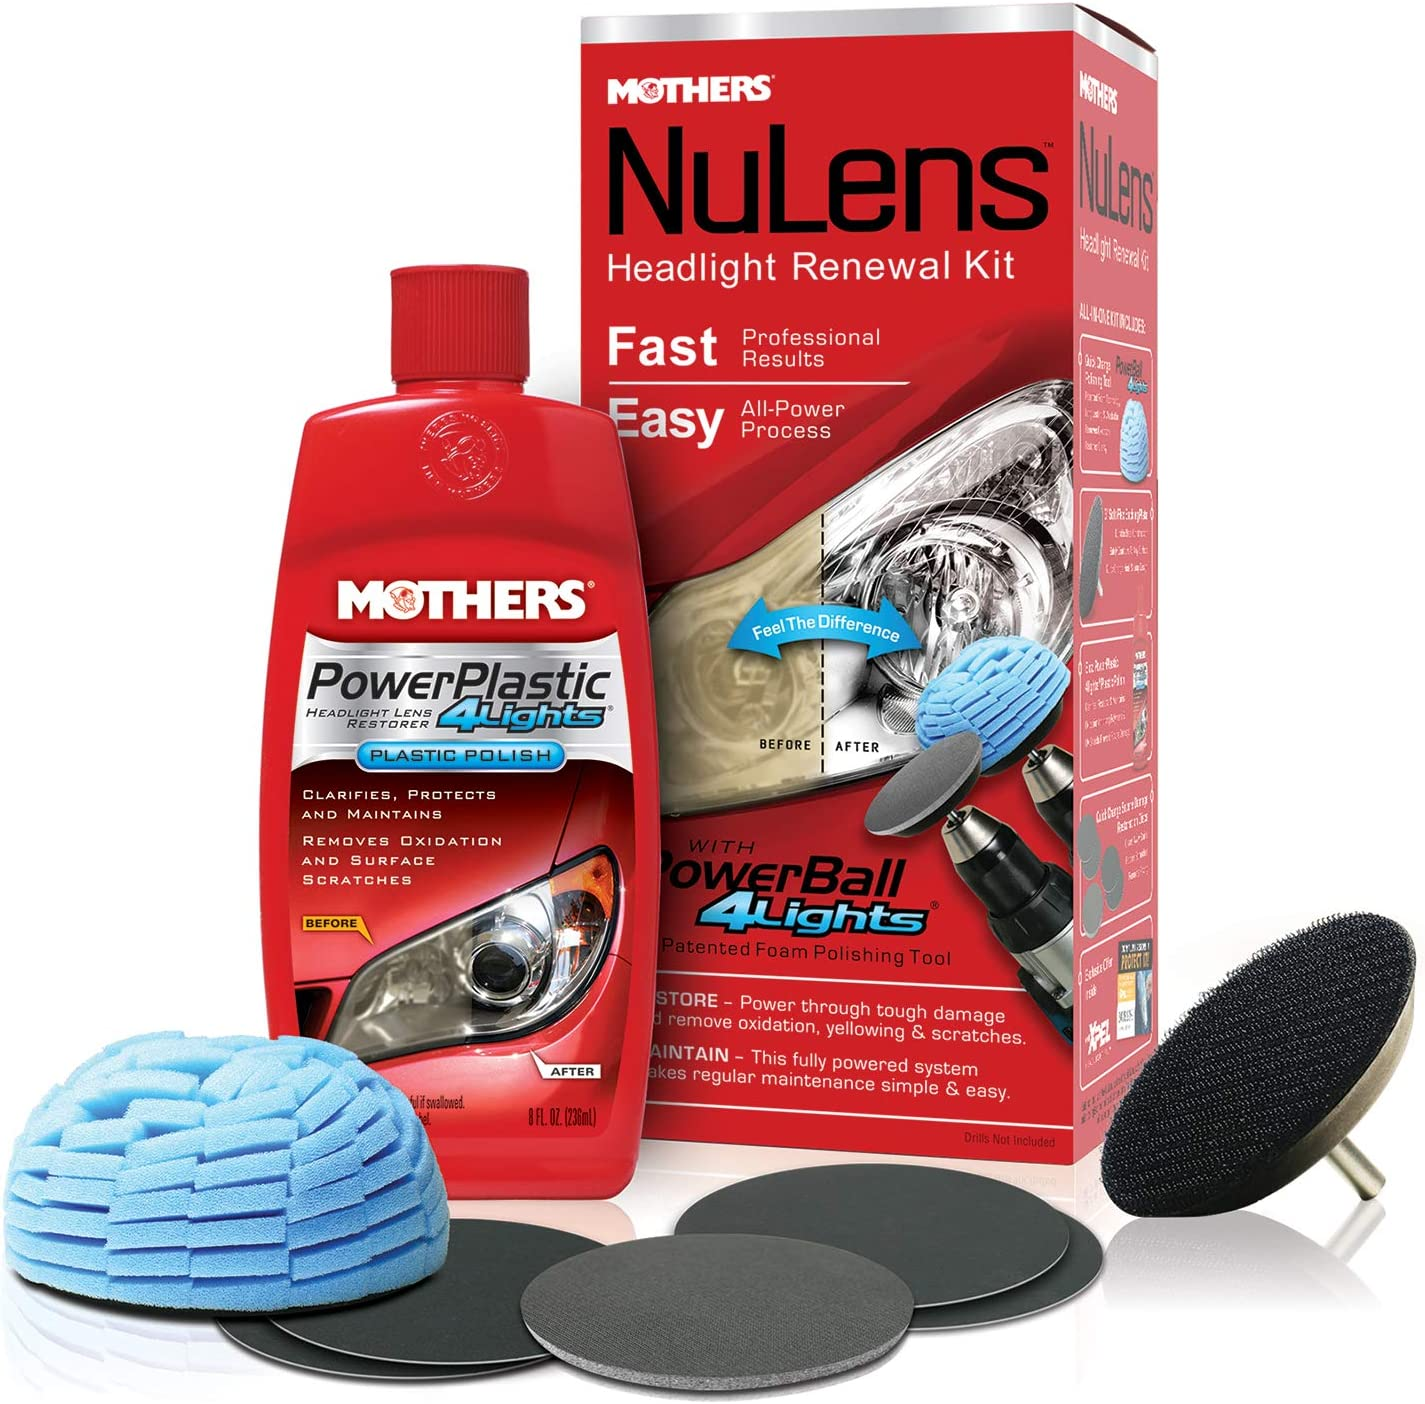 Mothers 07251 NuLens Headlight Renewal Kit